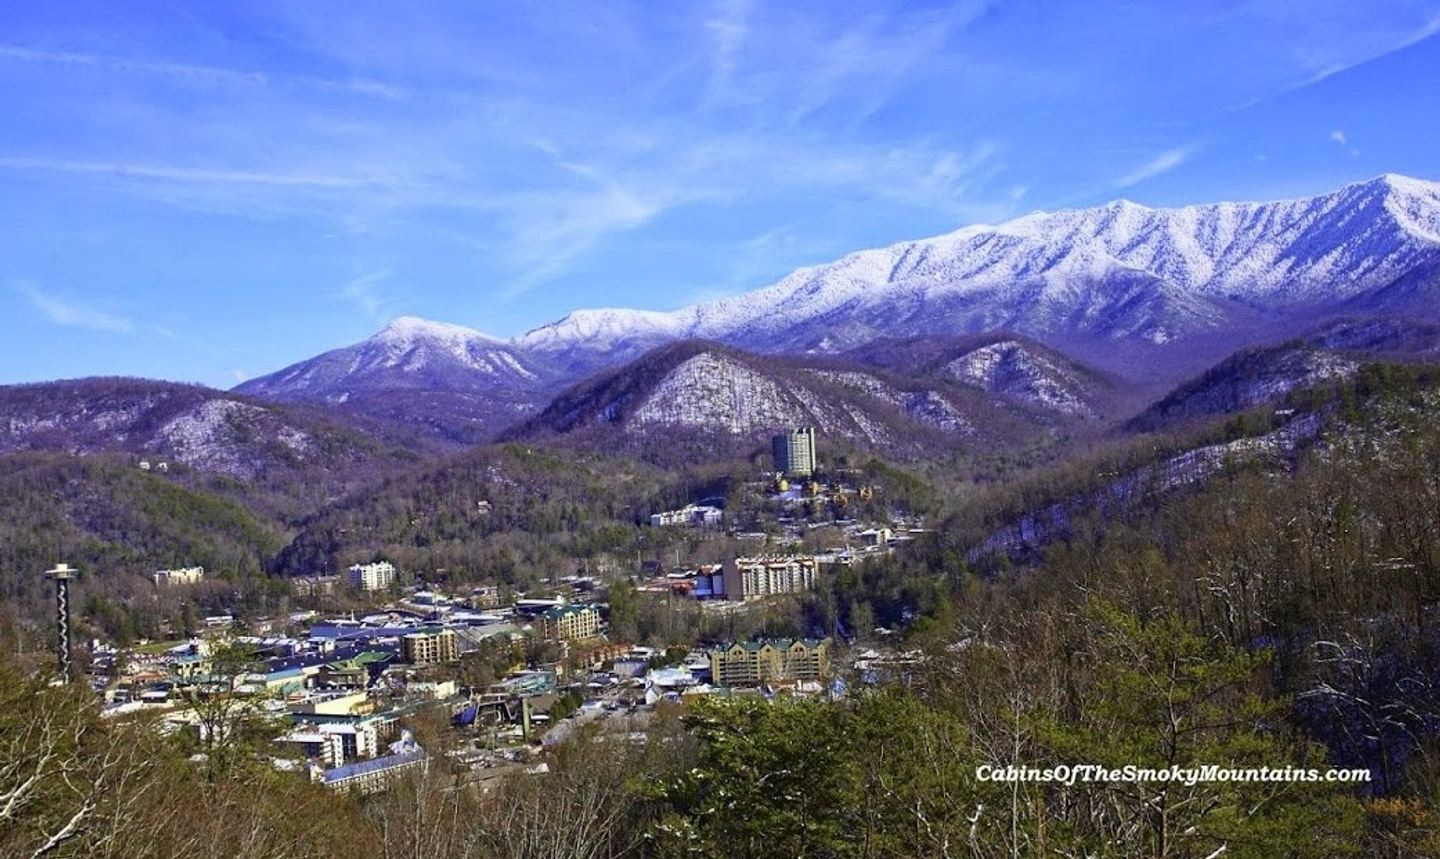 Holiday Shopping Pigeon Forge 12/5/20-12/6/20